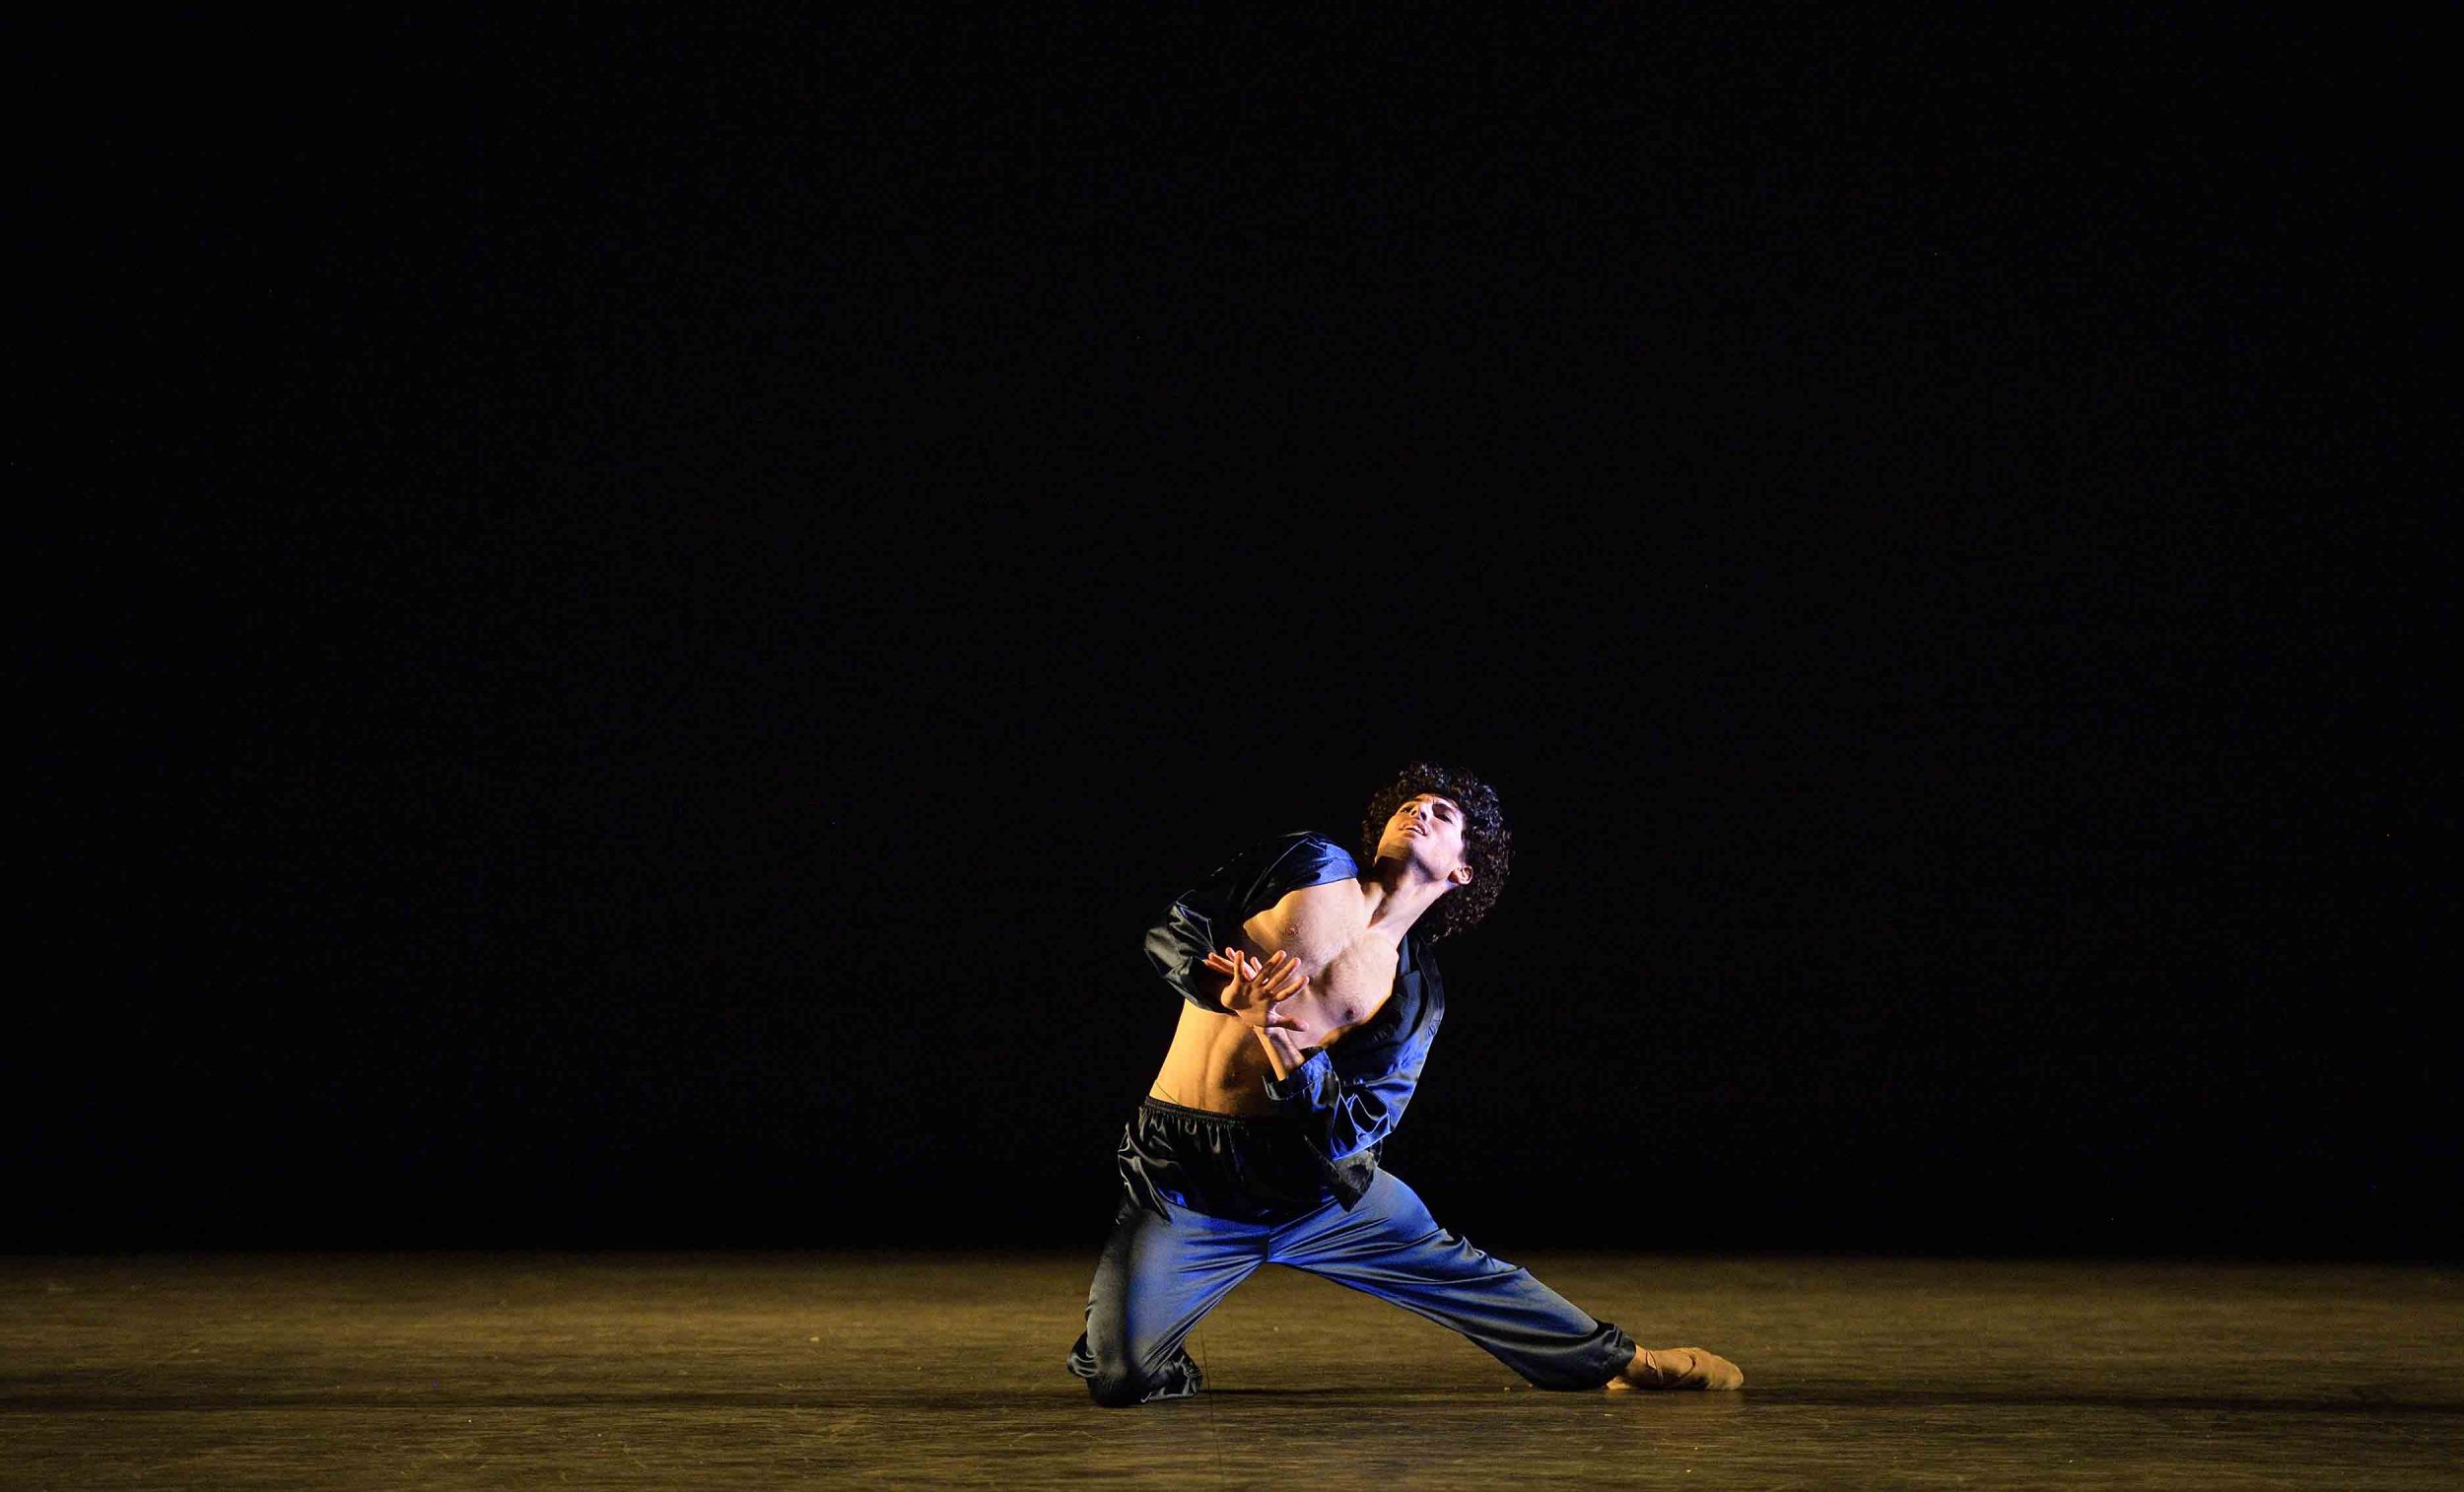 Fernando-Carratalá-Coloma-performing-The-last-call-©-Laurent-Liotardo--(2)